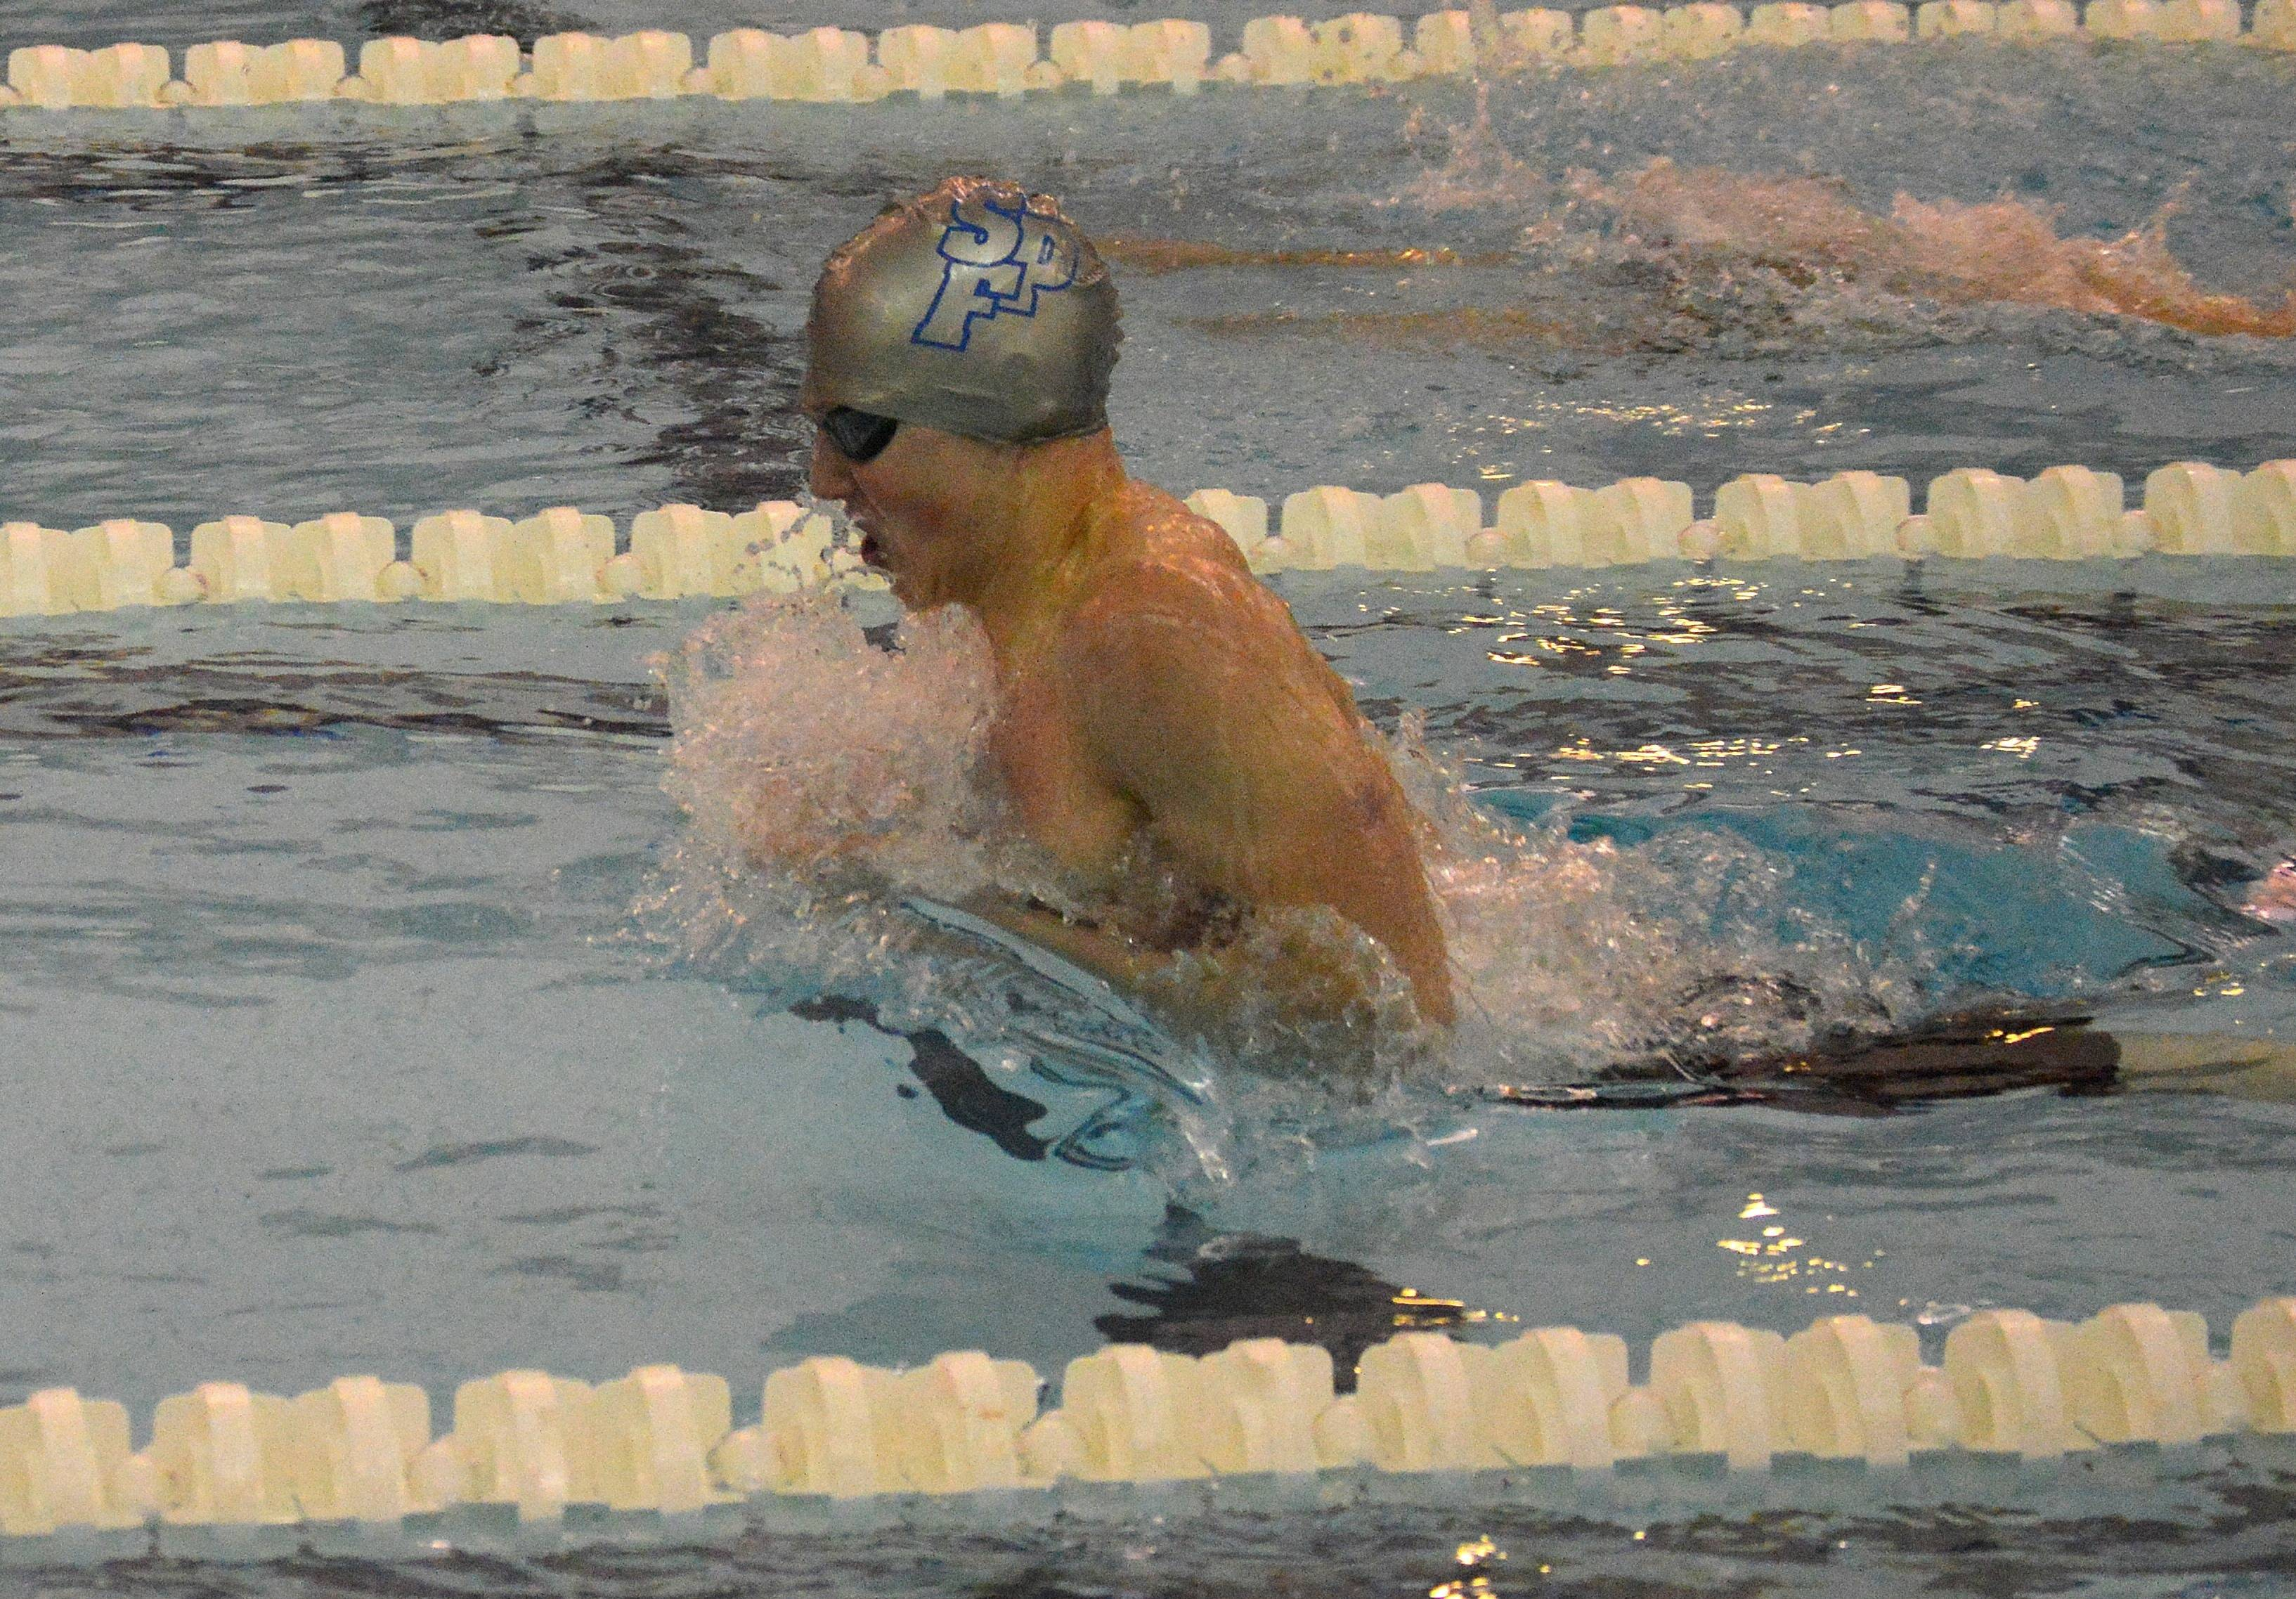 a75d93517235c909a12c_1-10-17_Chris_Bondarowicz_in_the_200_Breaststroke.JPG